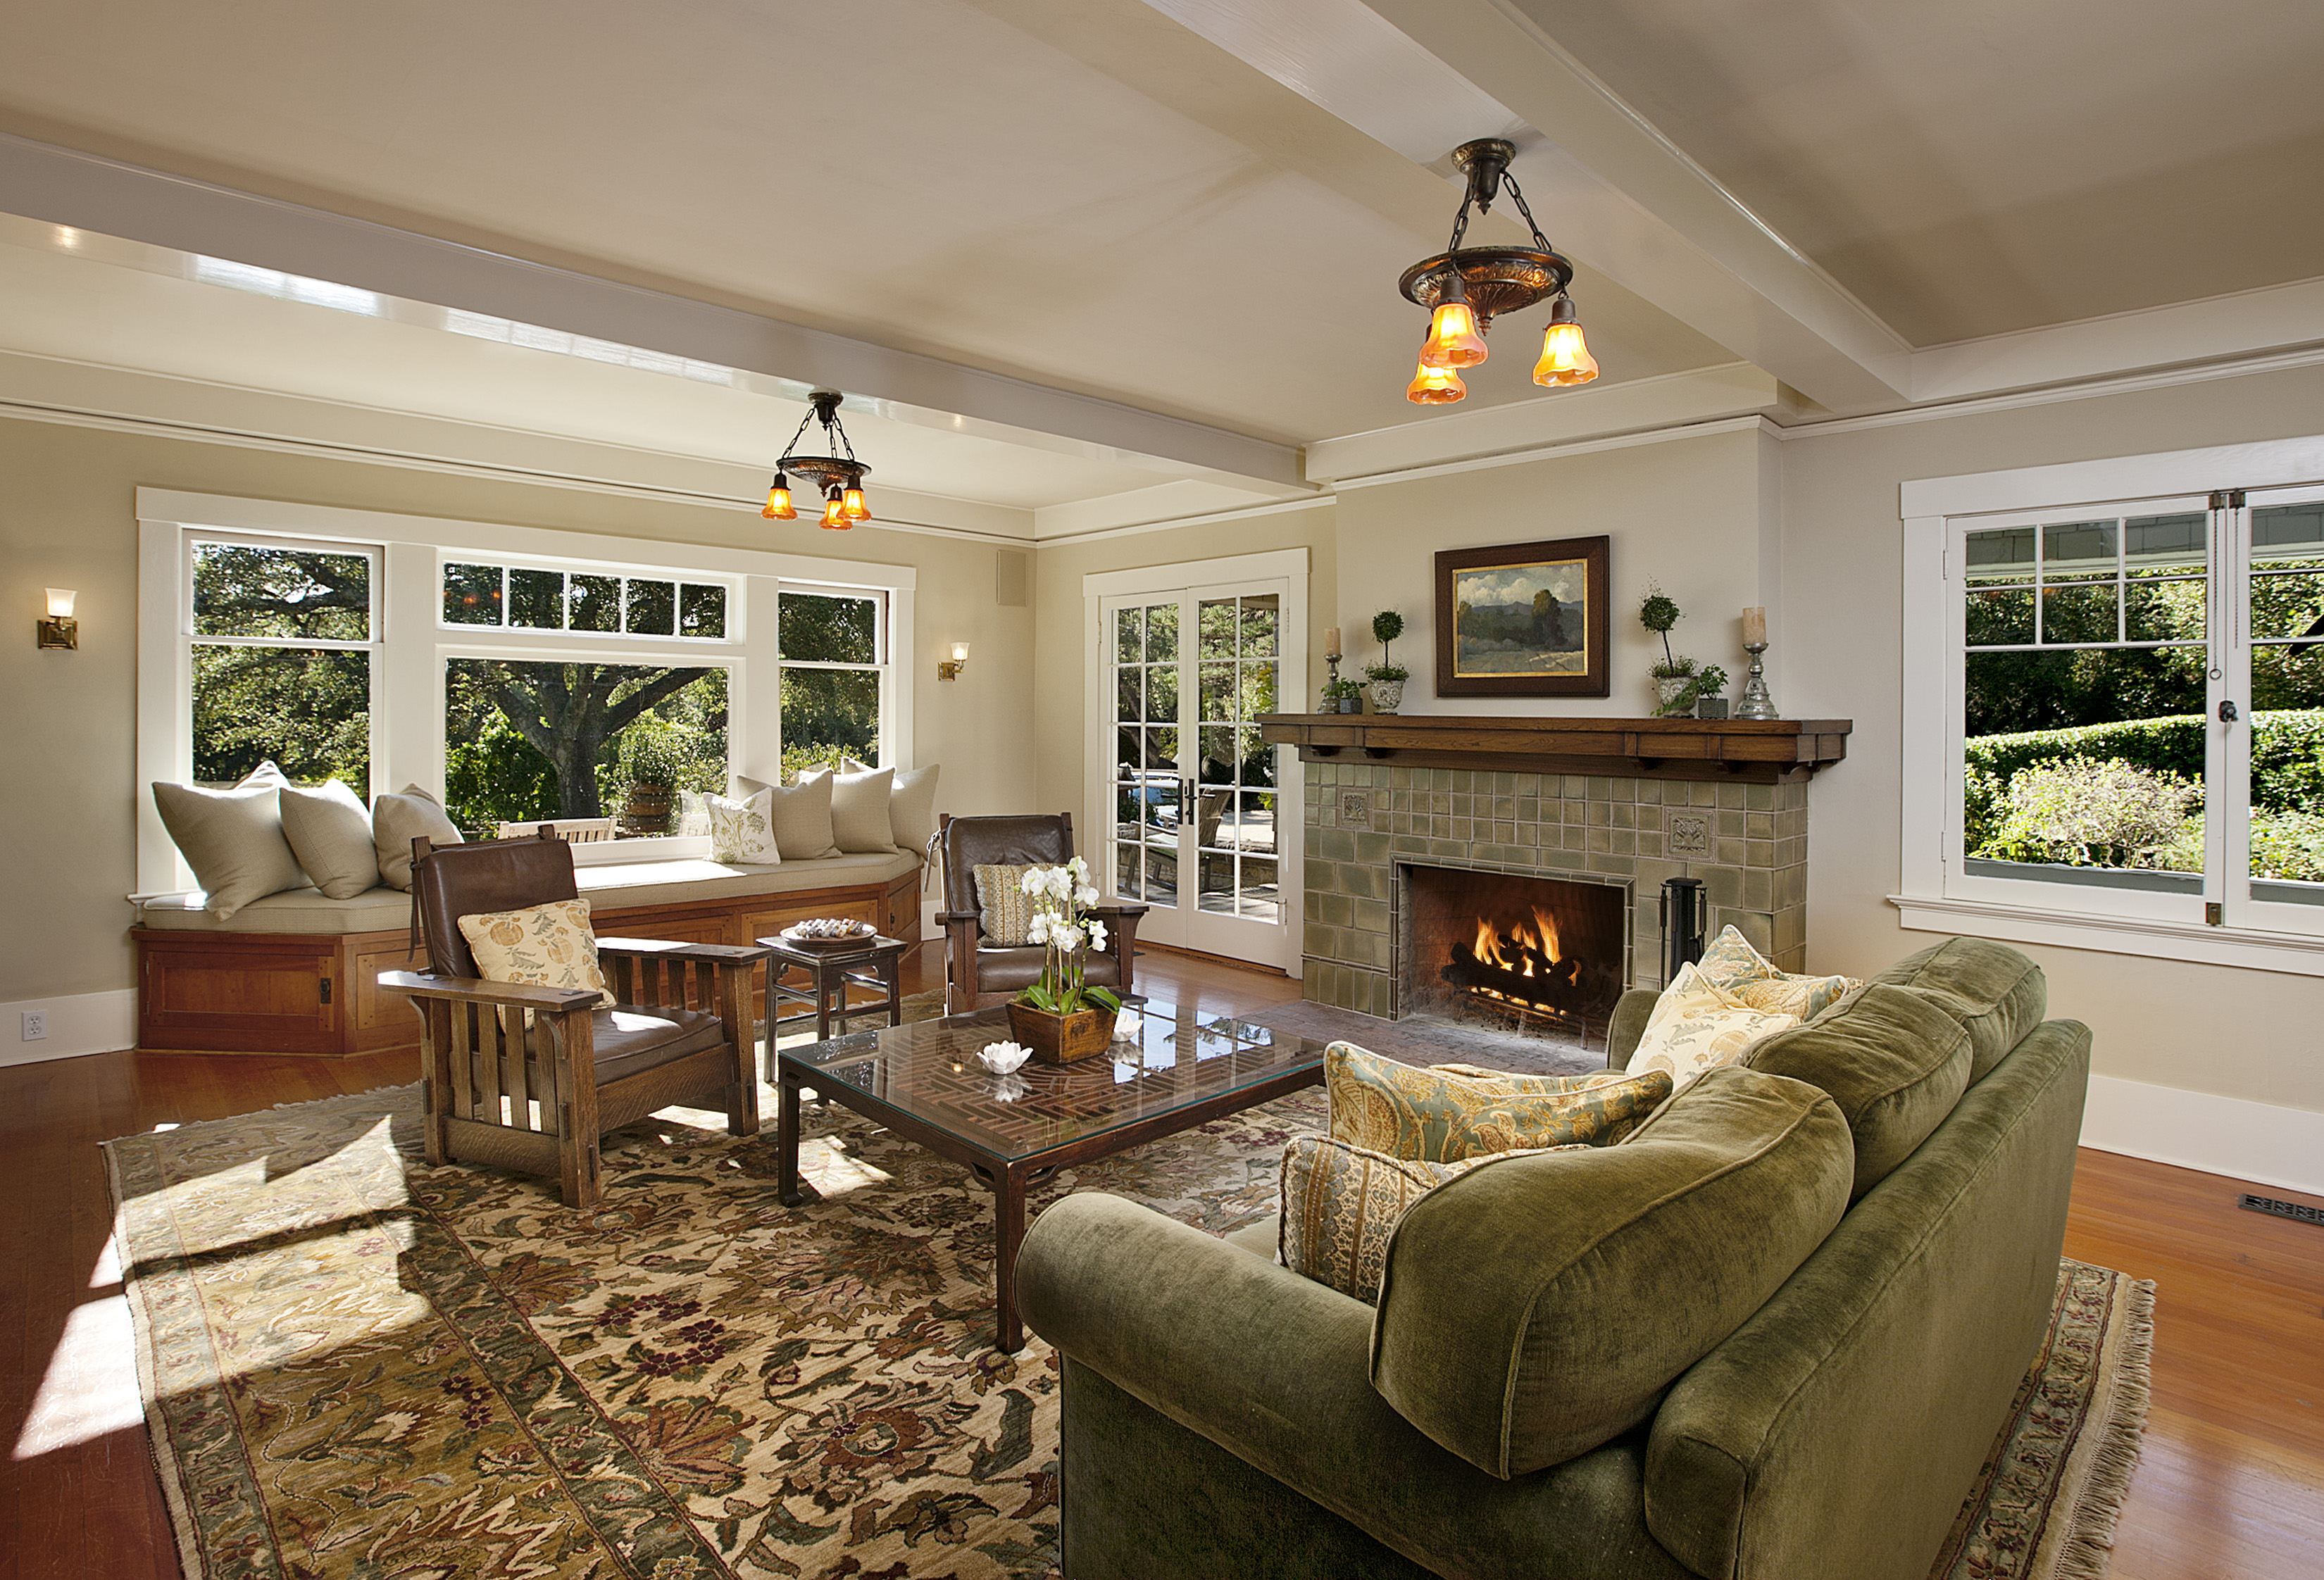 Popular home styles for 2012 montecito real estate - Pictures of interior design living rooms ...